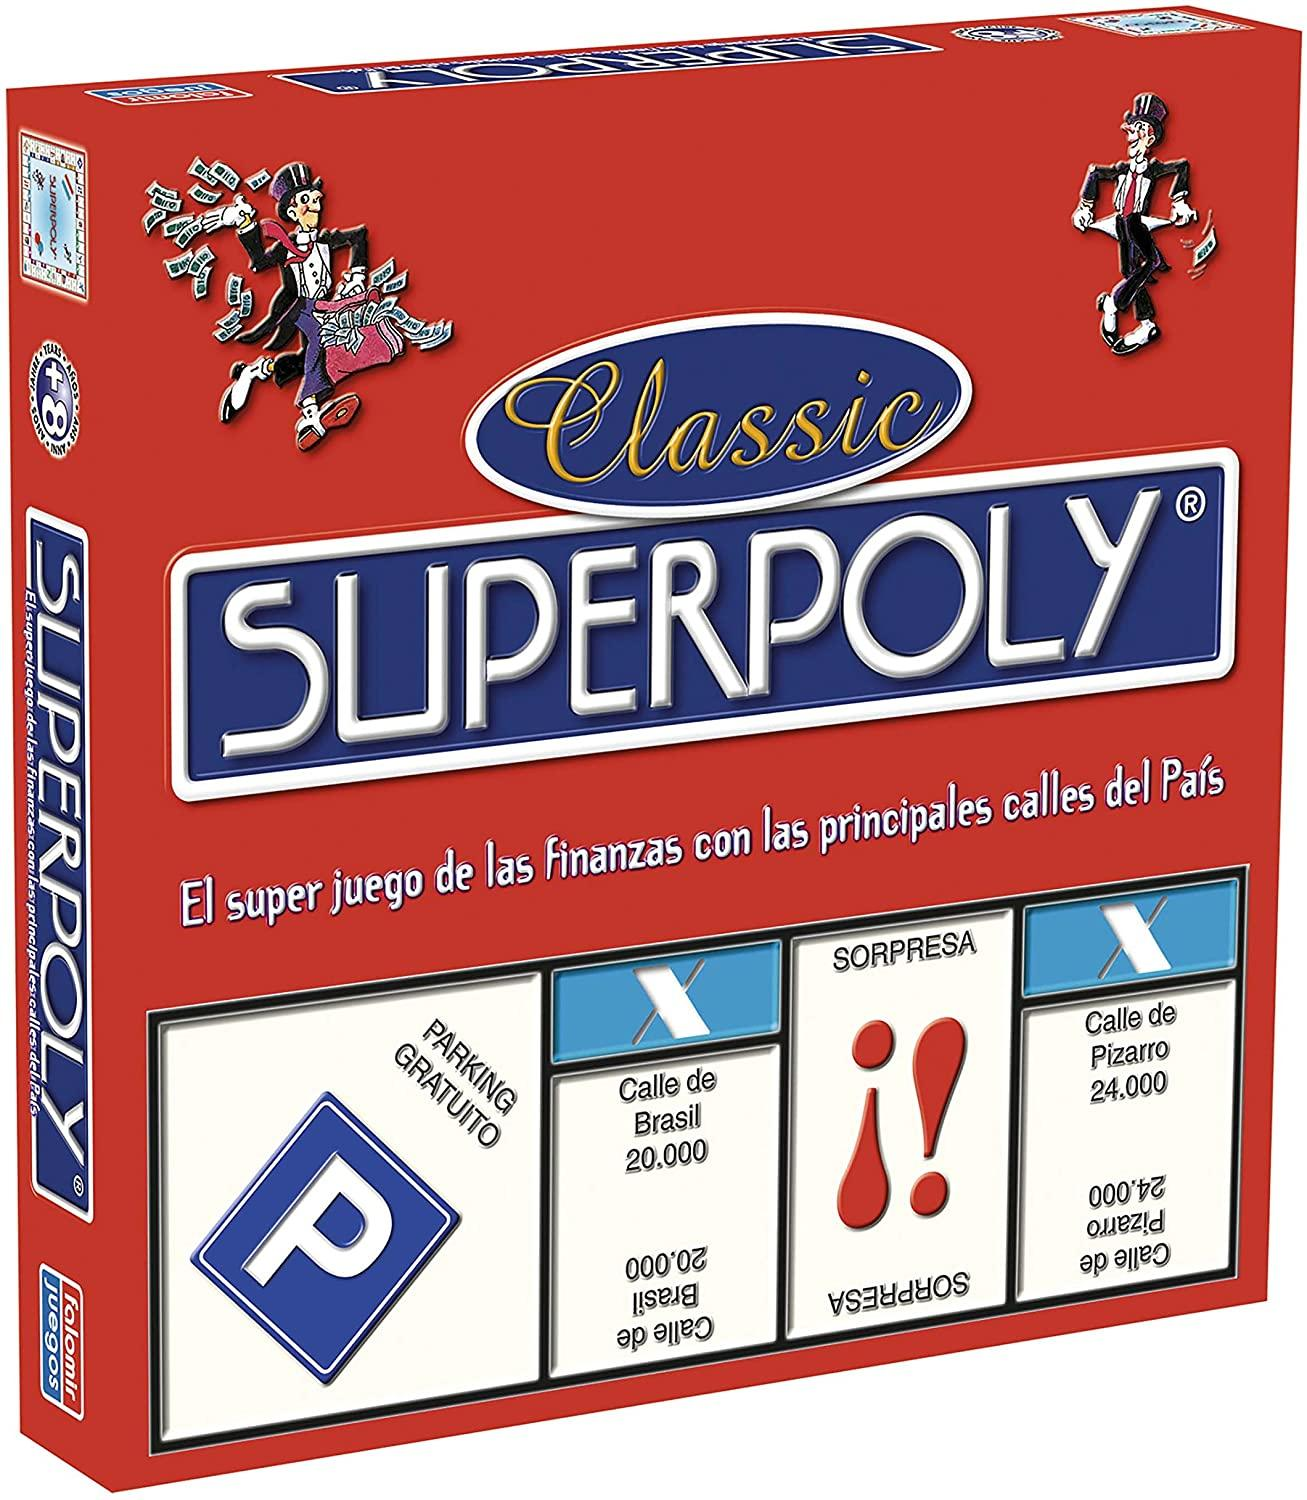 Falomir Superpoly, Juego De Table, Classic, Multicolored (646375)